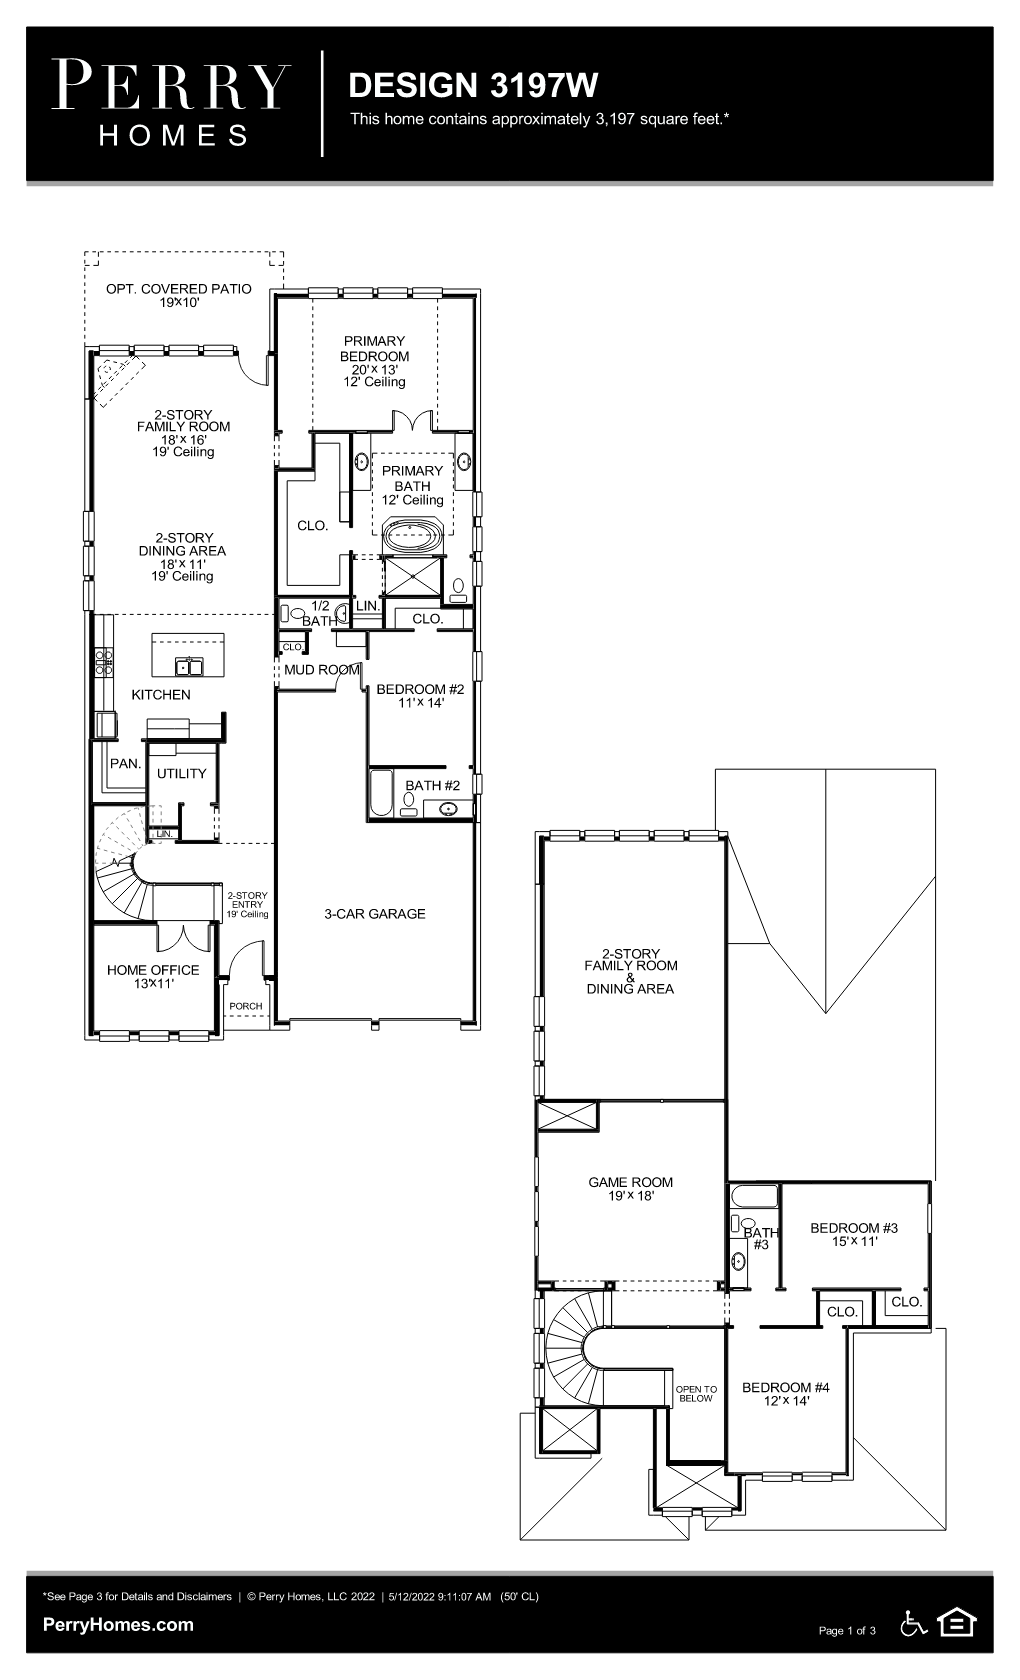 Floor Plan for 3197W